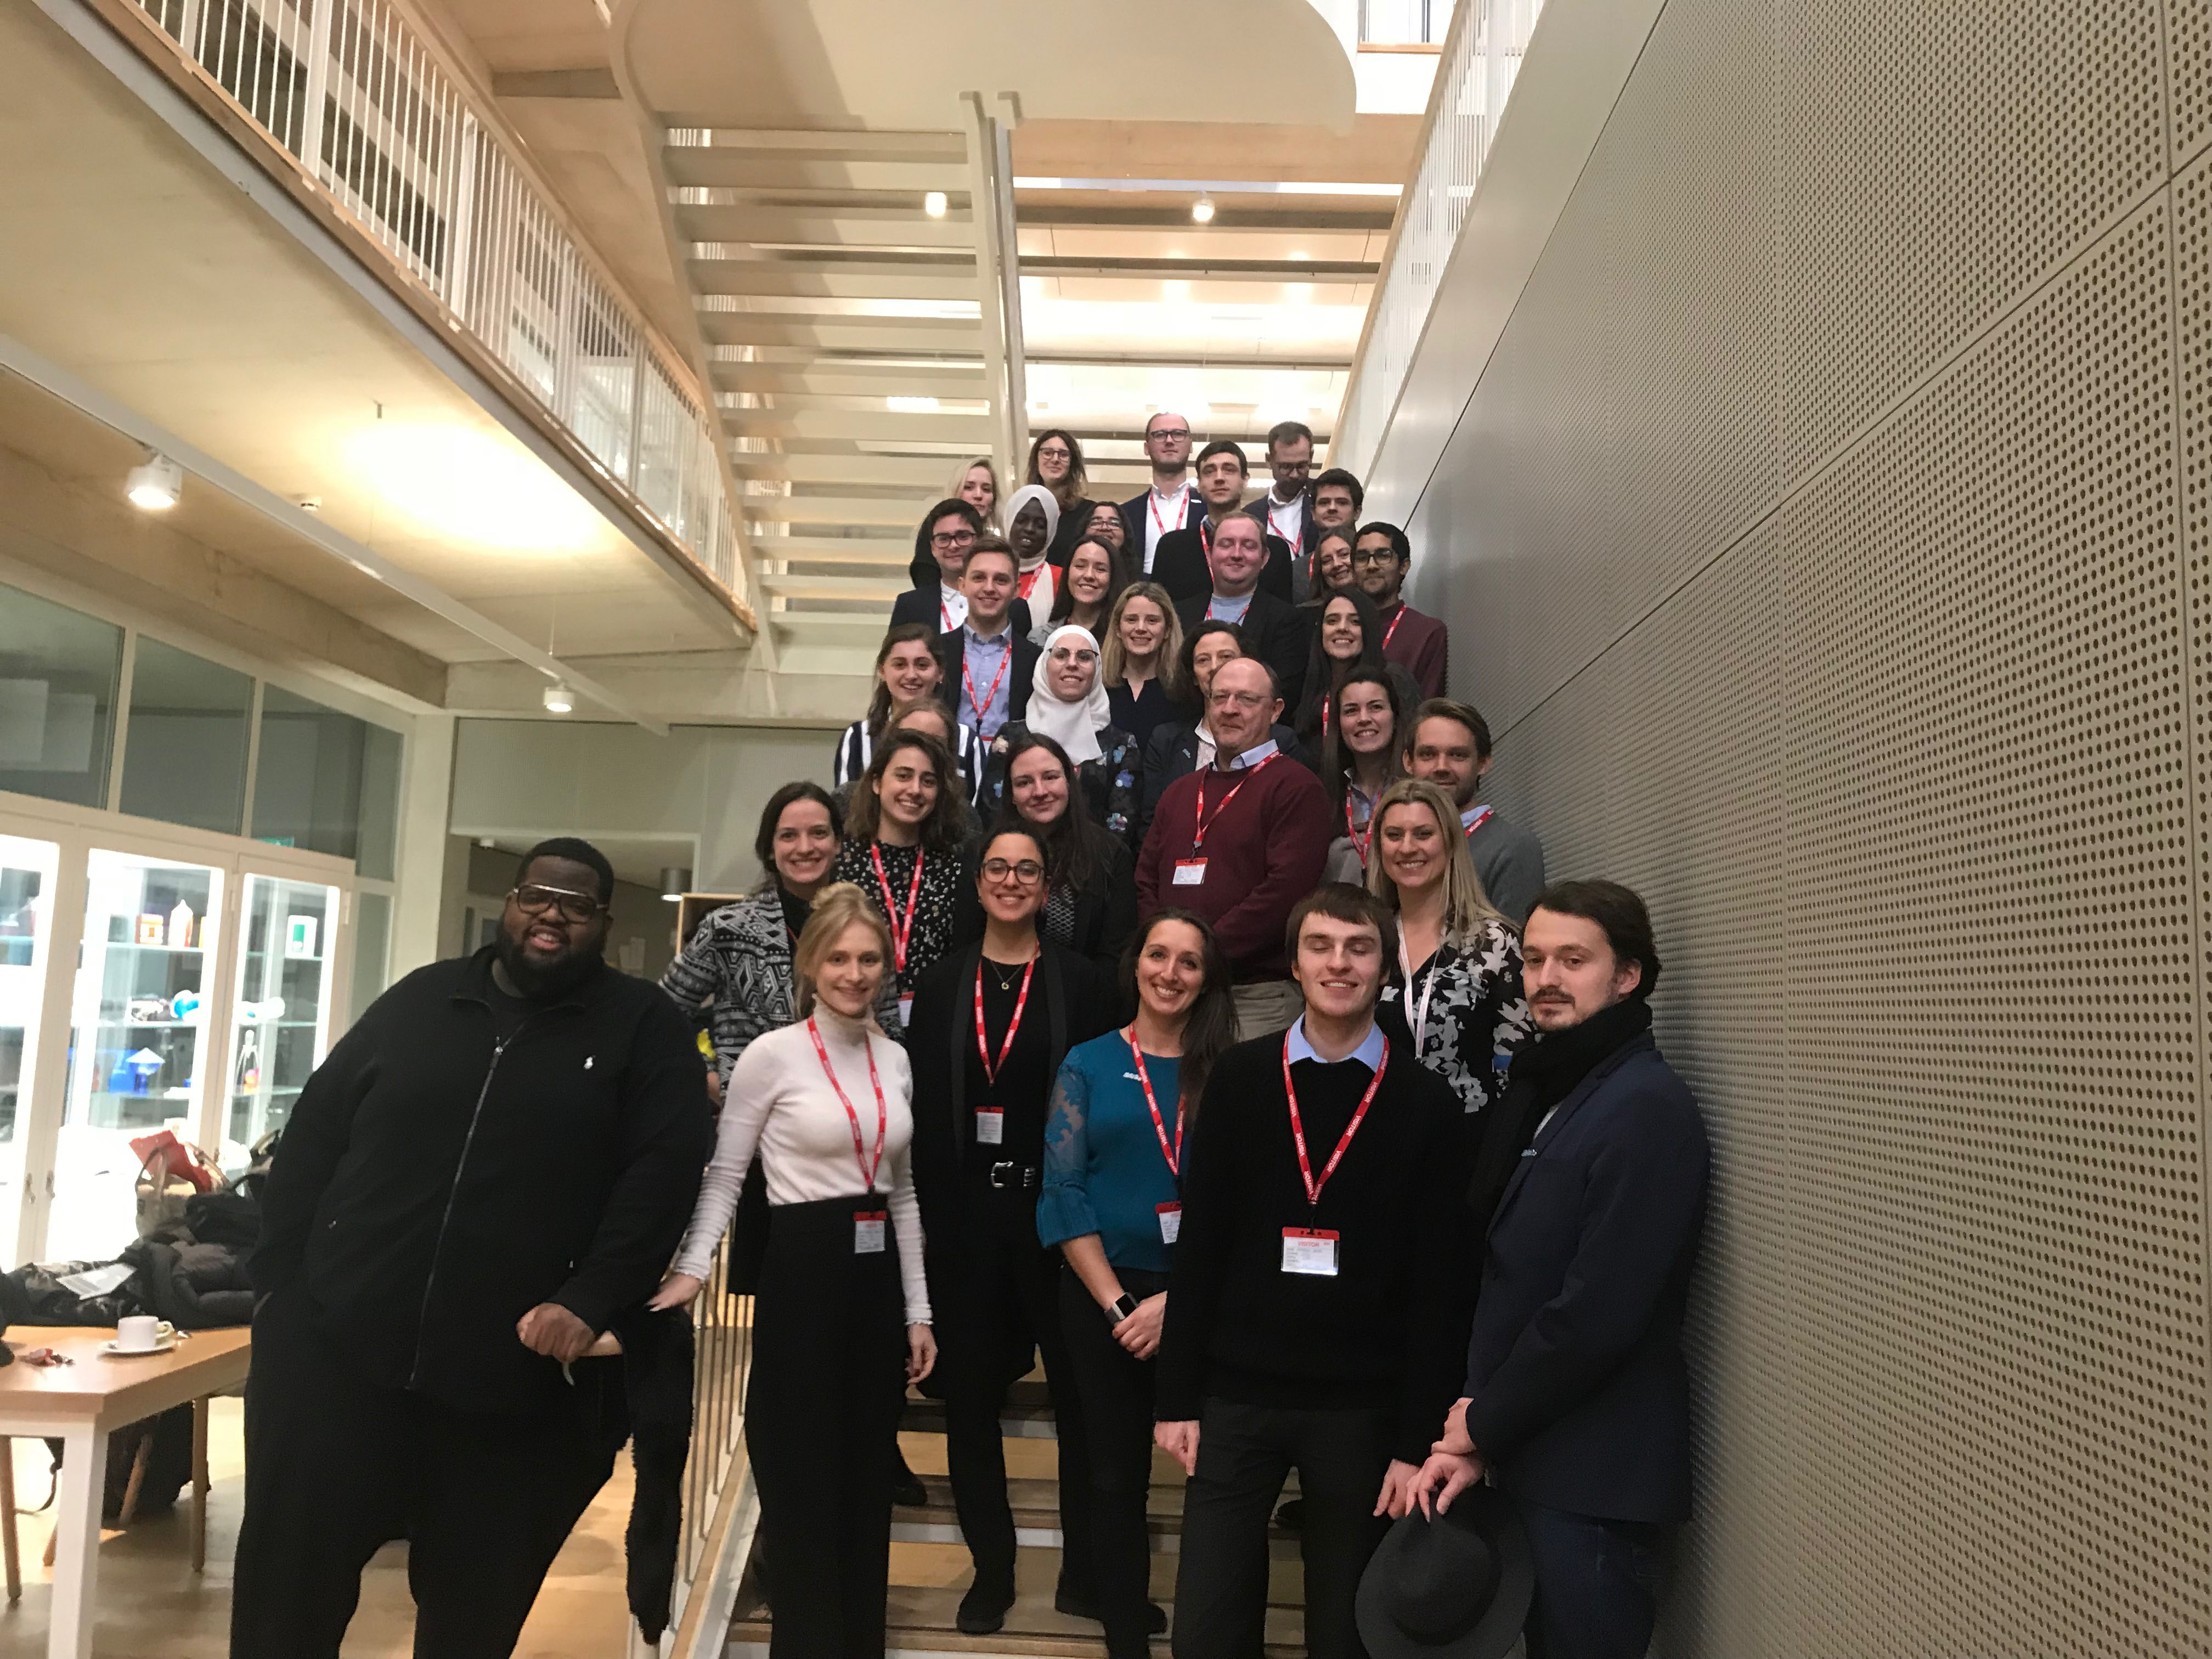 oyw day, one young world, oyw, sevenoaks school, social business, sdg, sdgs, hackathon